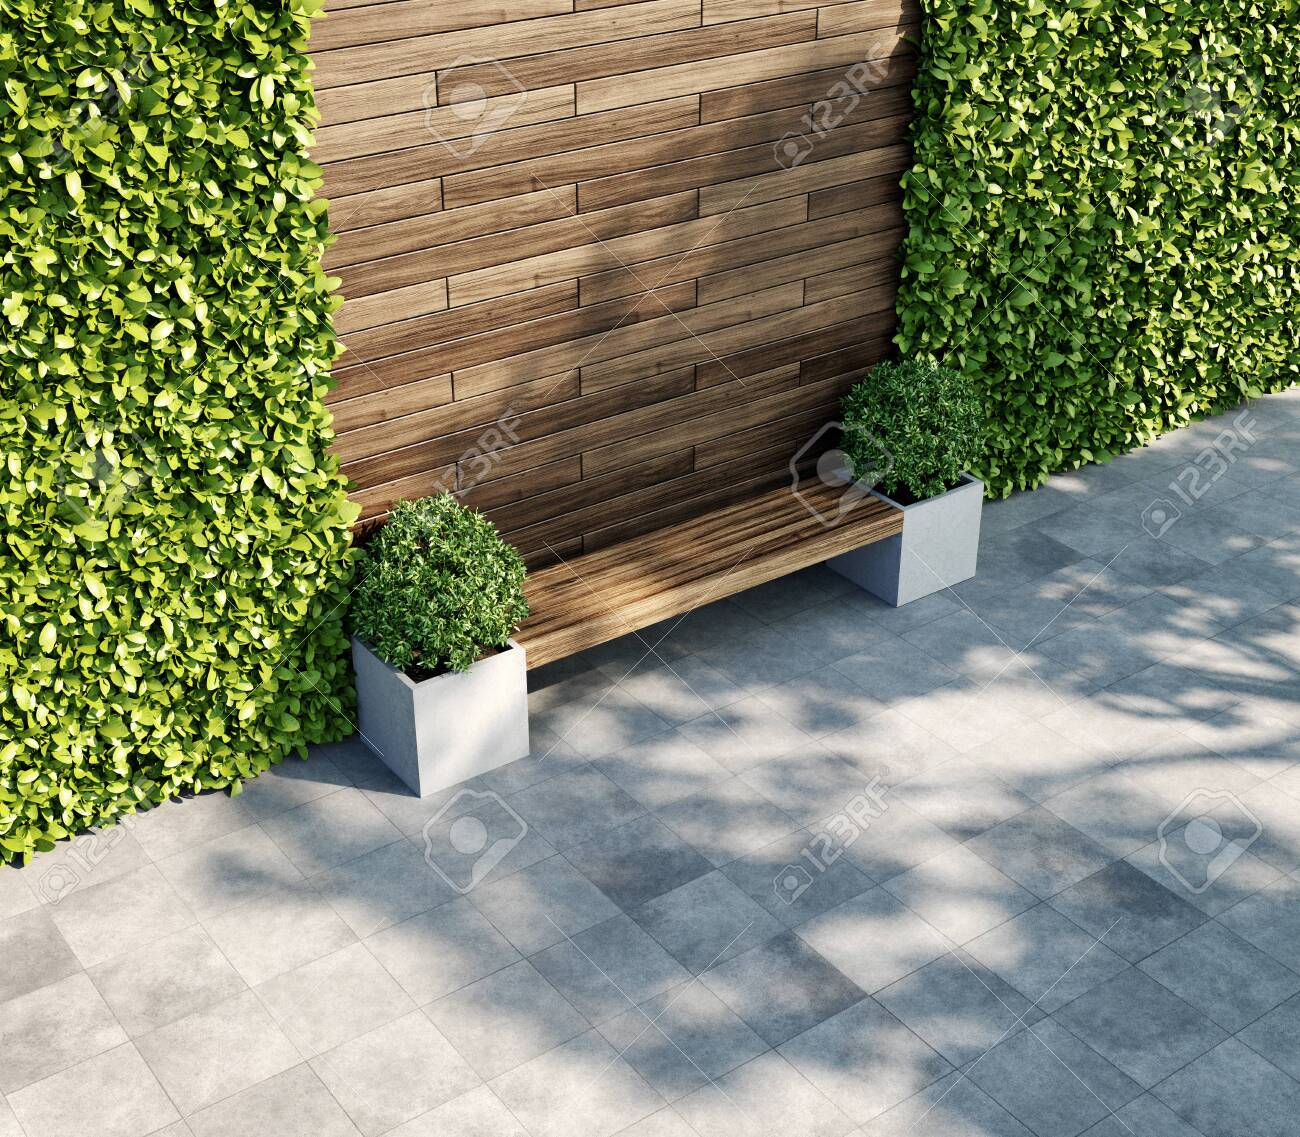 Heavy Duty Counter Stools, Decorative Wooden Wall With Vertical Green Garden Bench In Shade Stock Photo Picture And Royalty Free Image Image 137221576